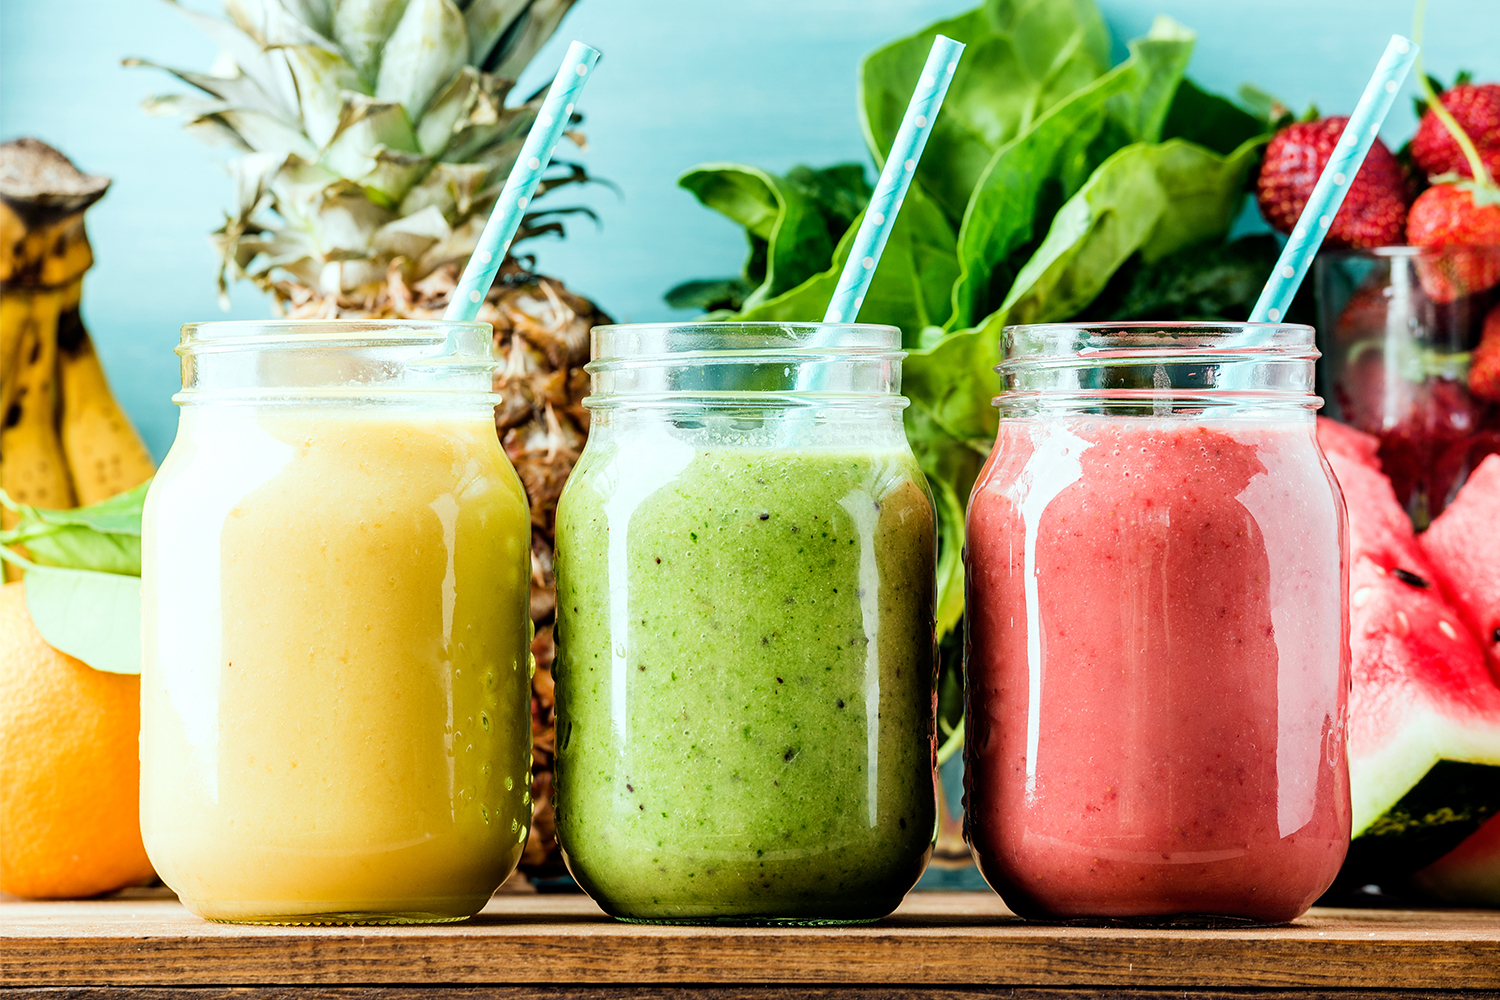 GET BEAUTIFUL SKIN WITH GREEN SMOOTHIES